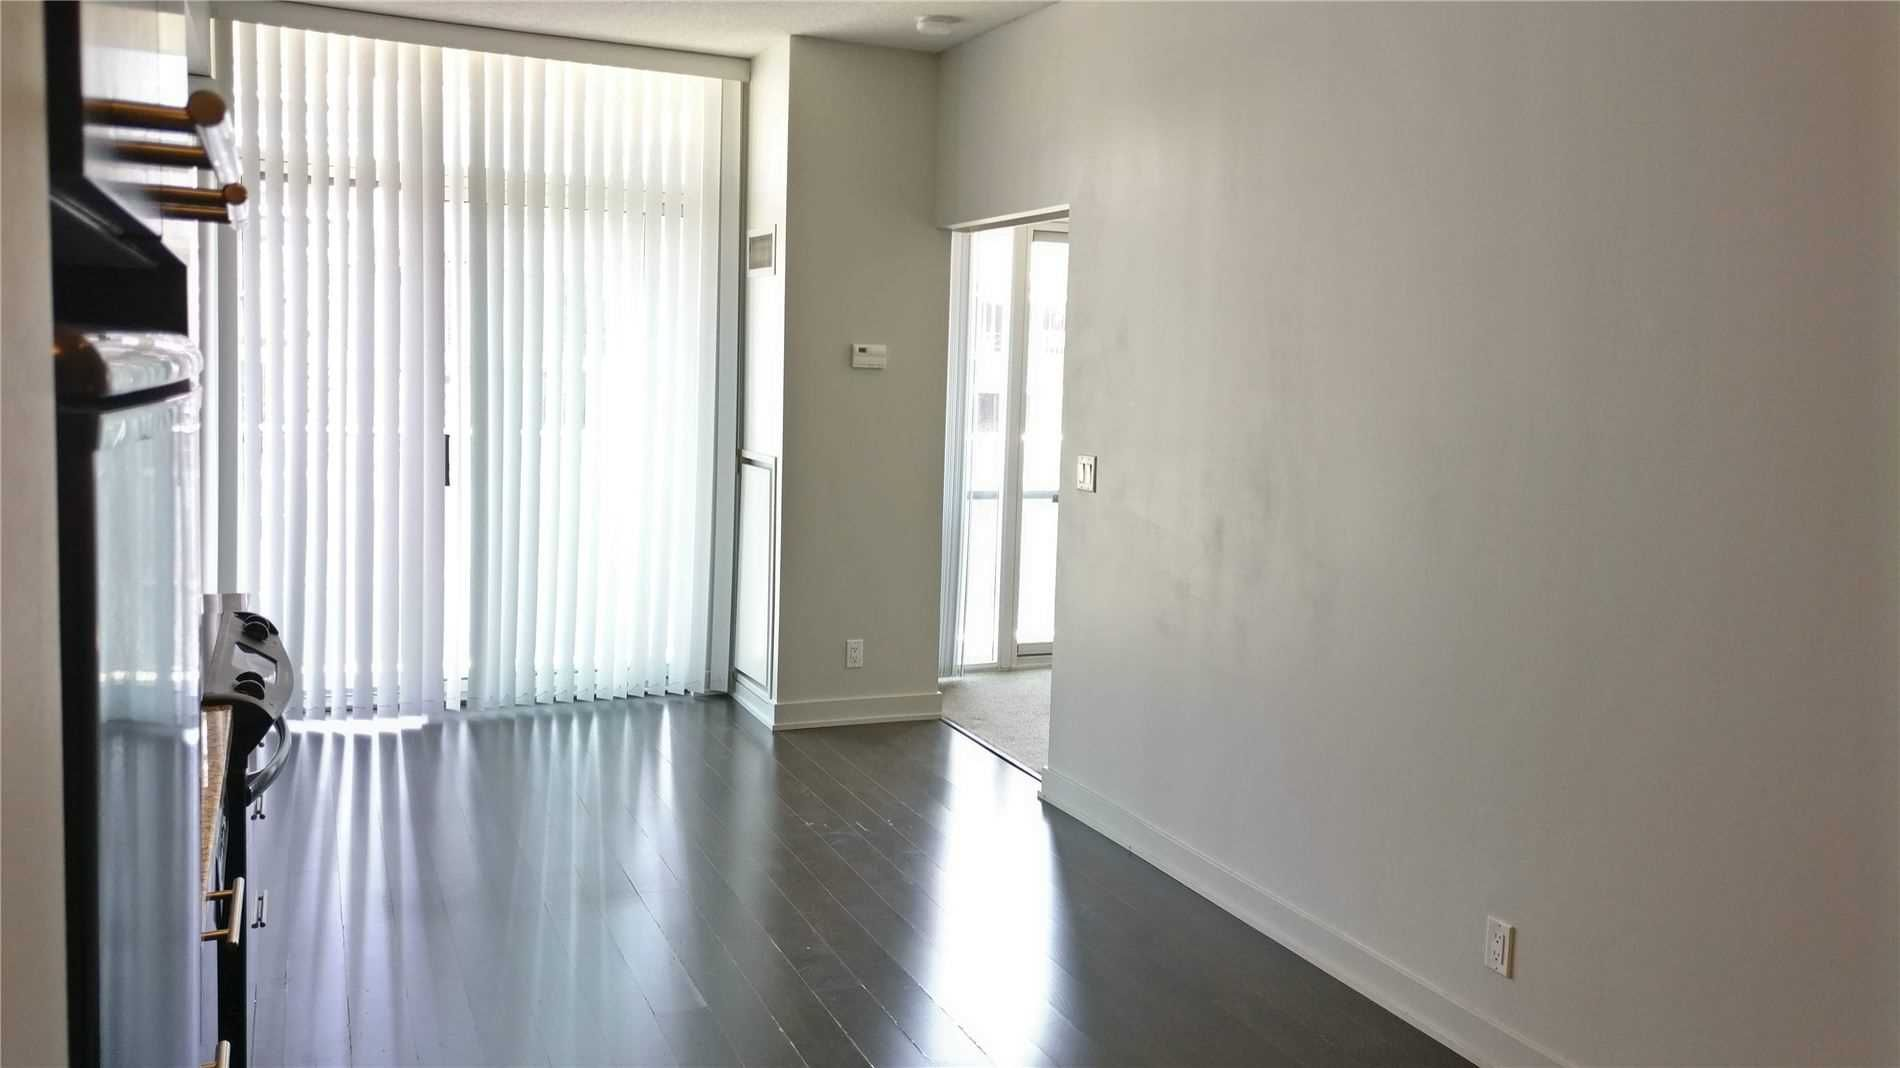 21 Nelson St, unit 823 for rent in Toronto - image #2